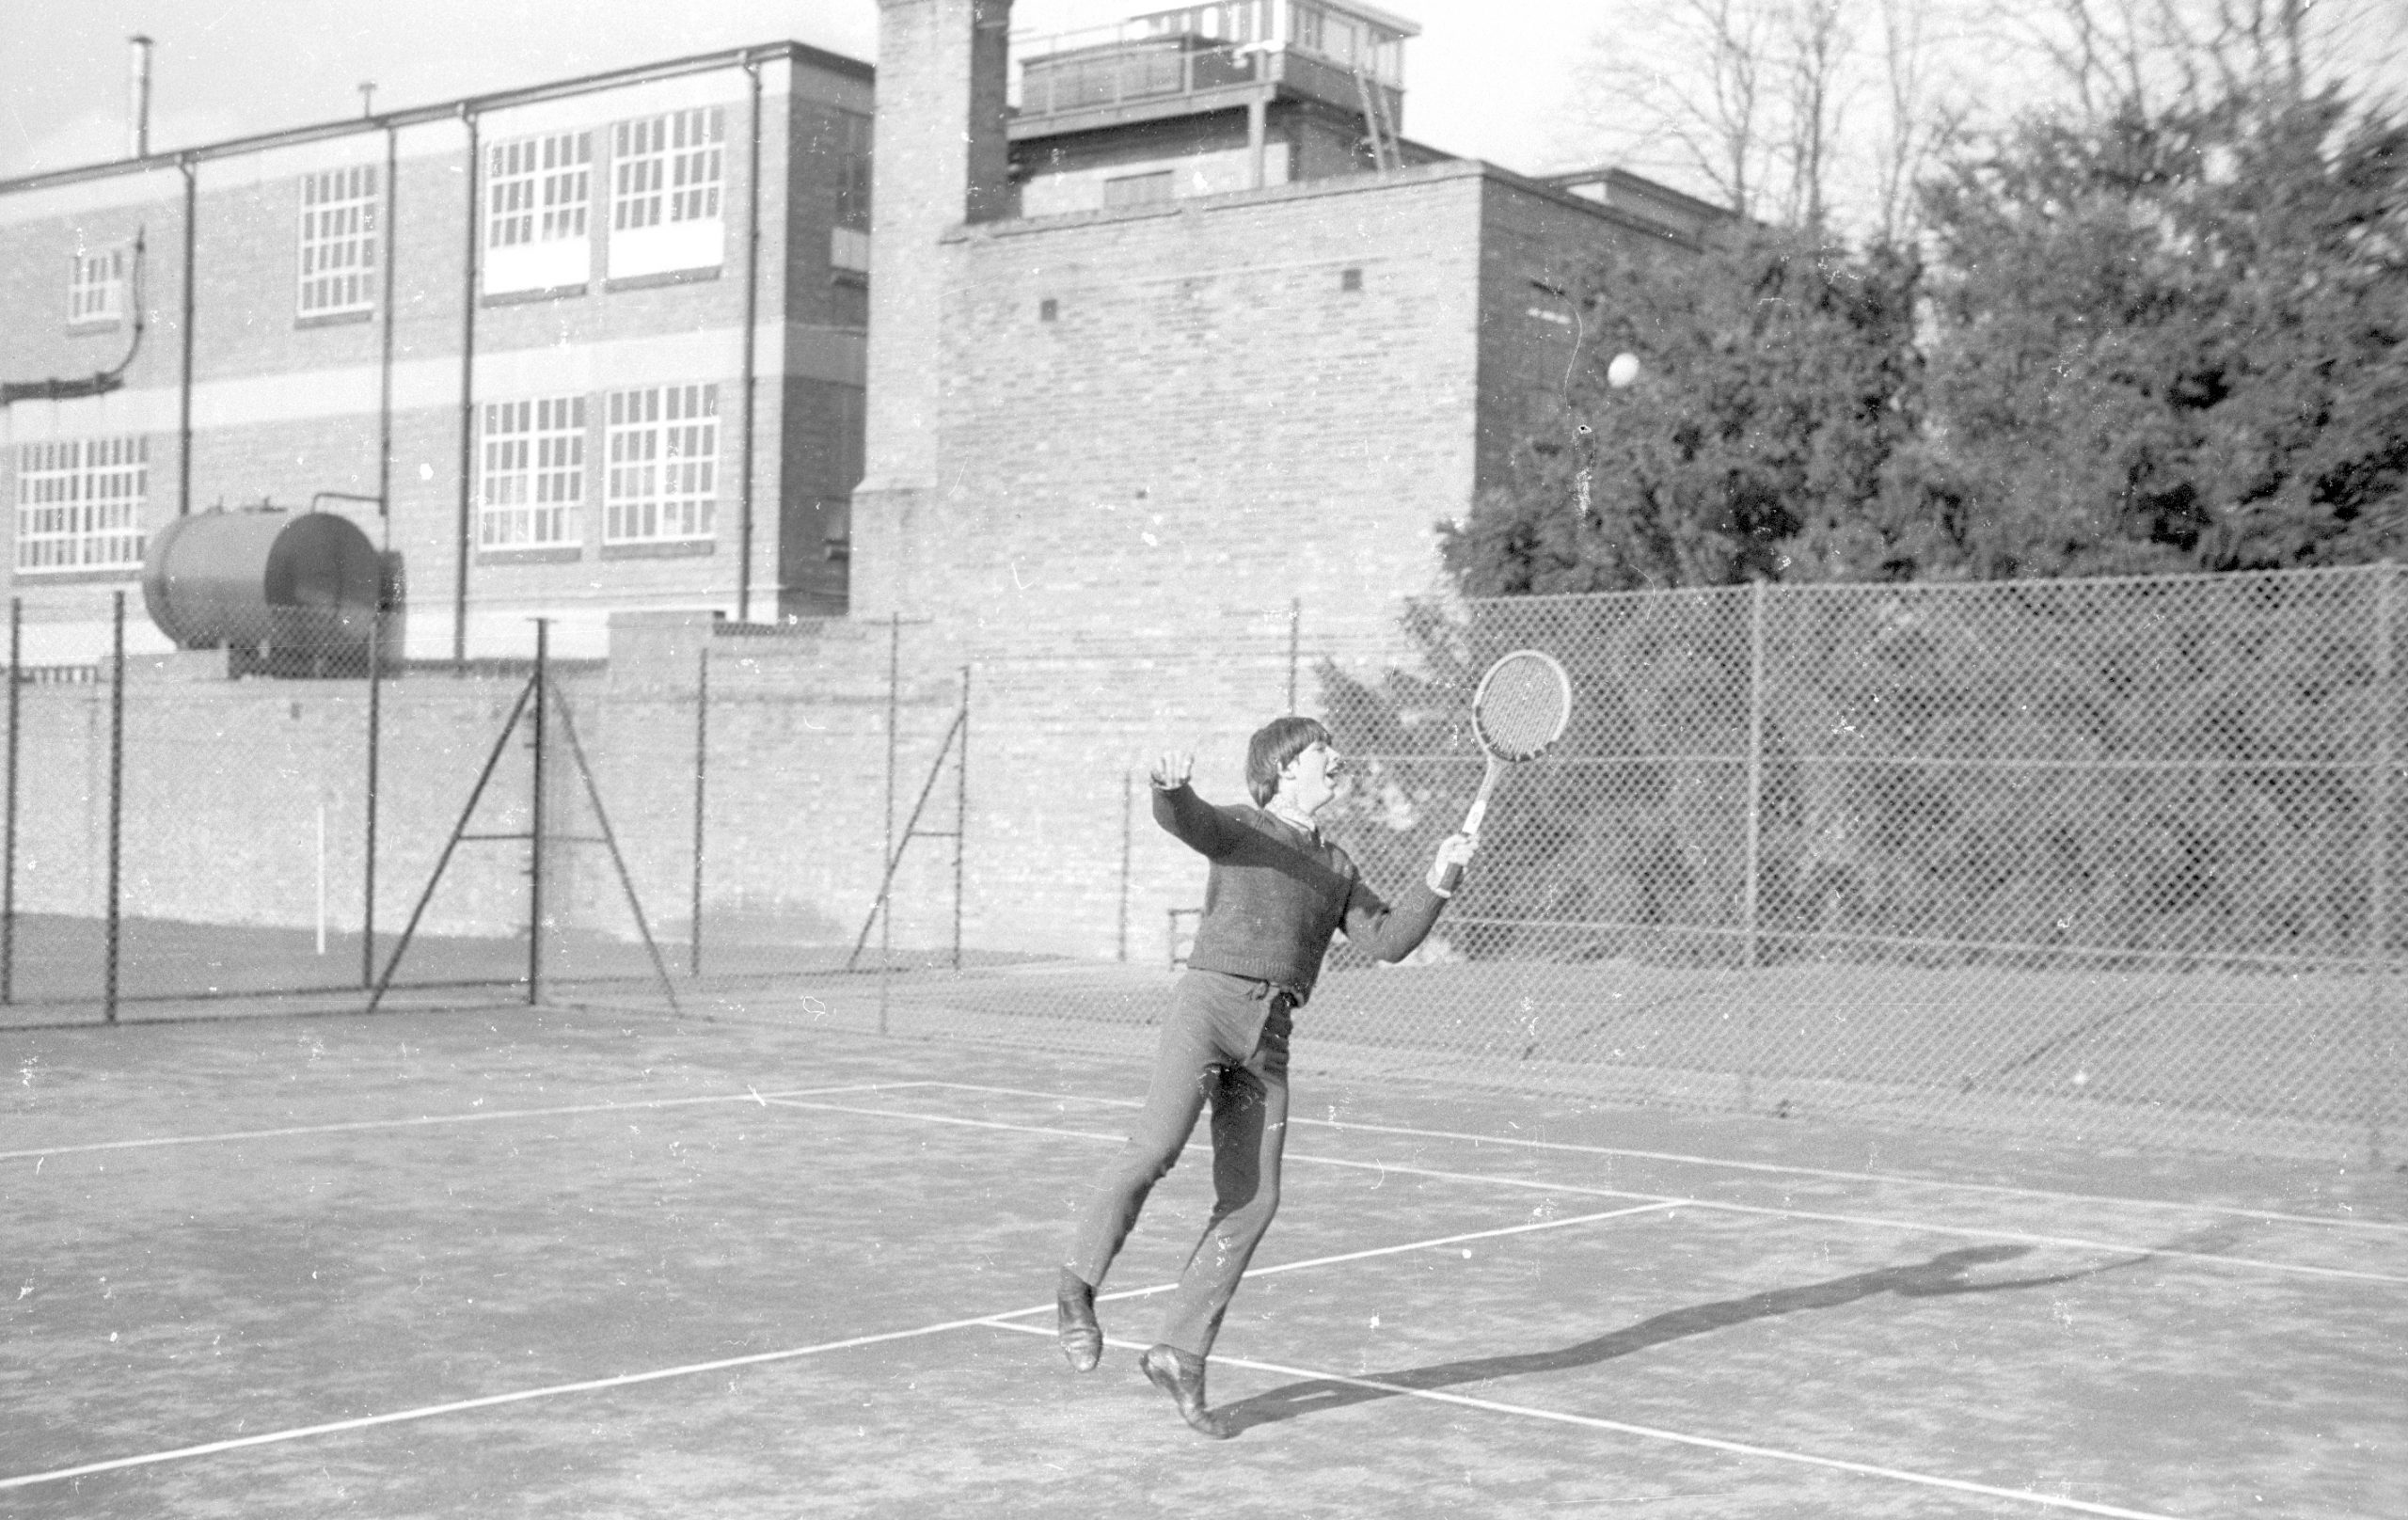 a volley